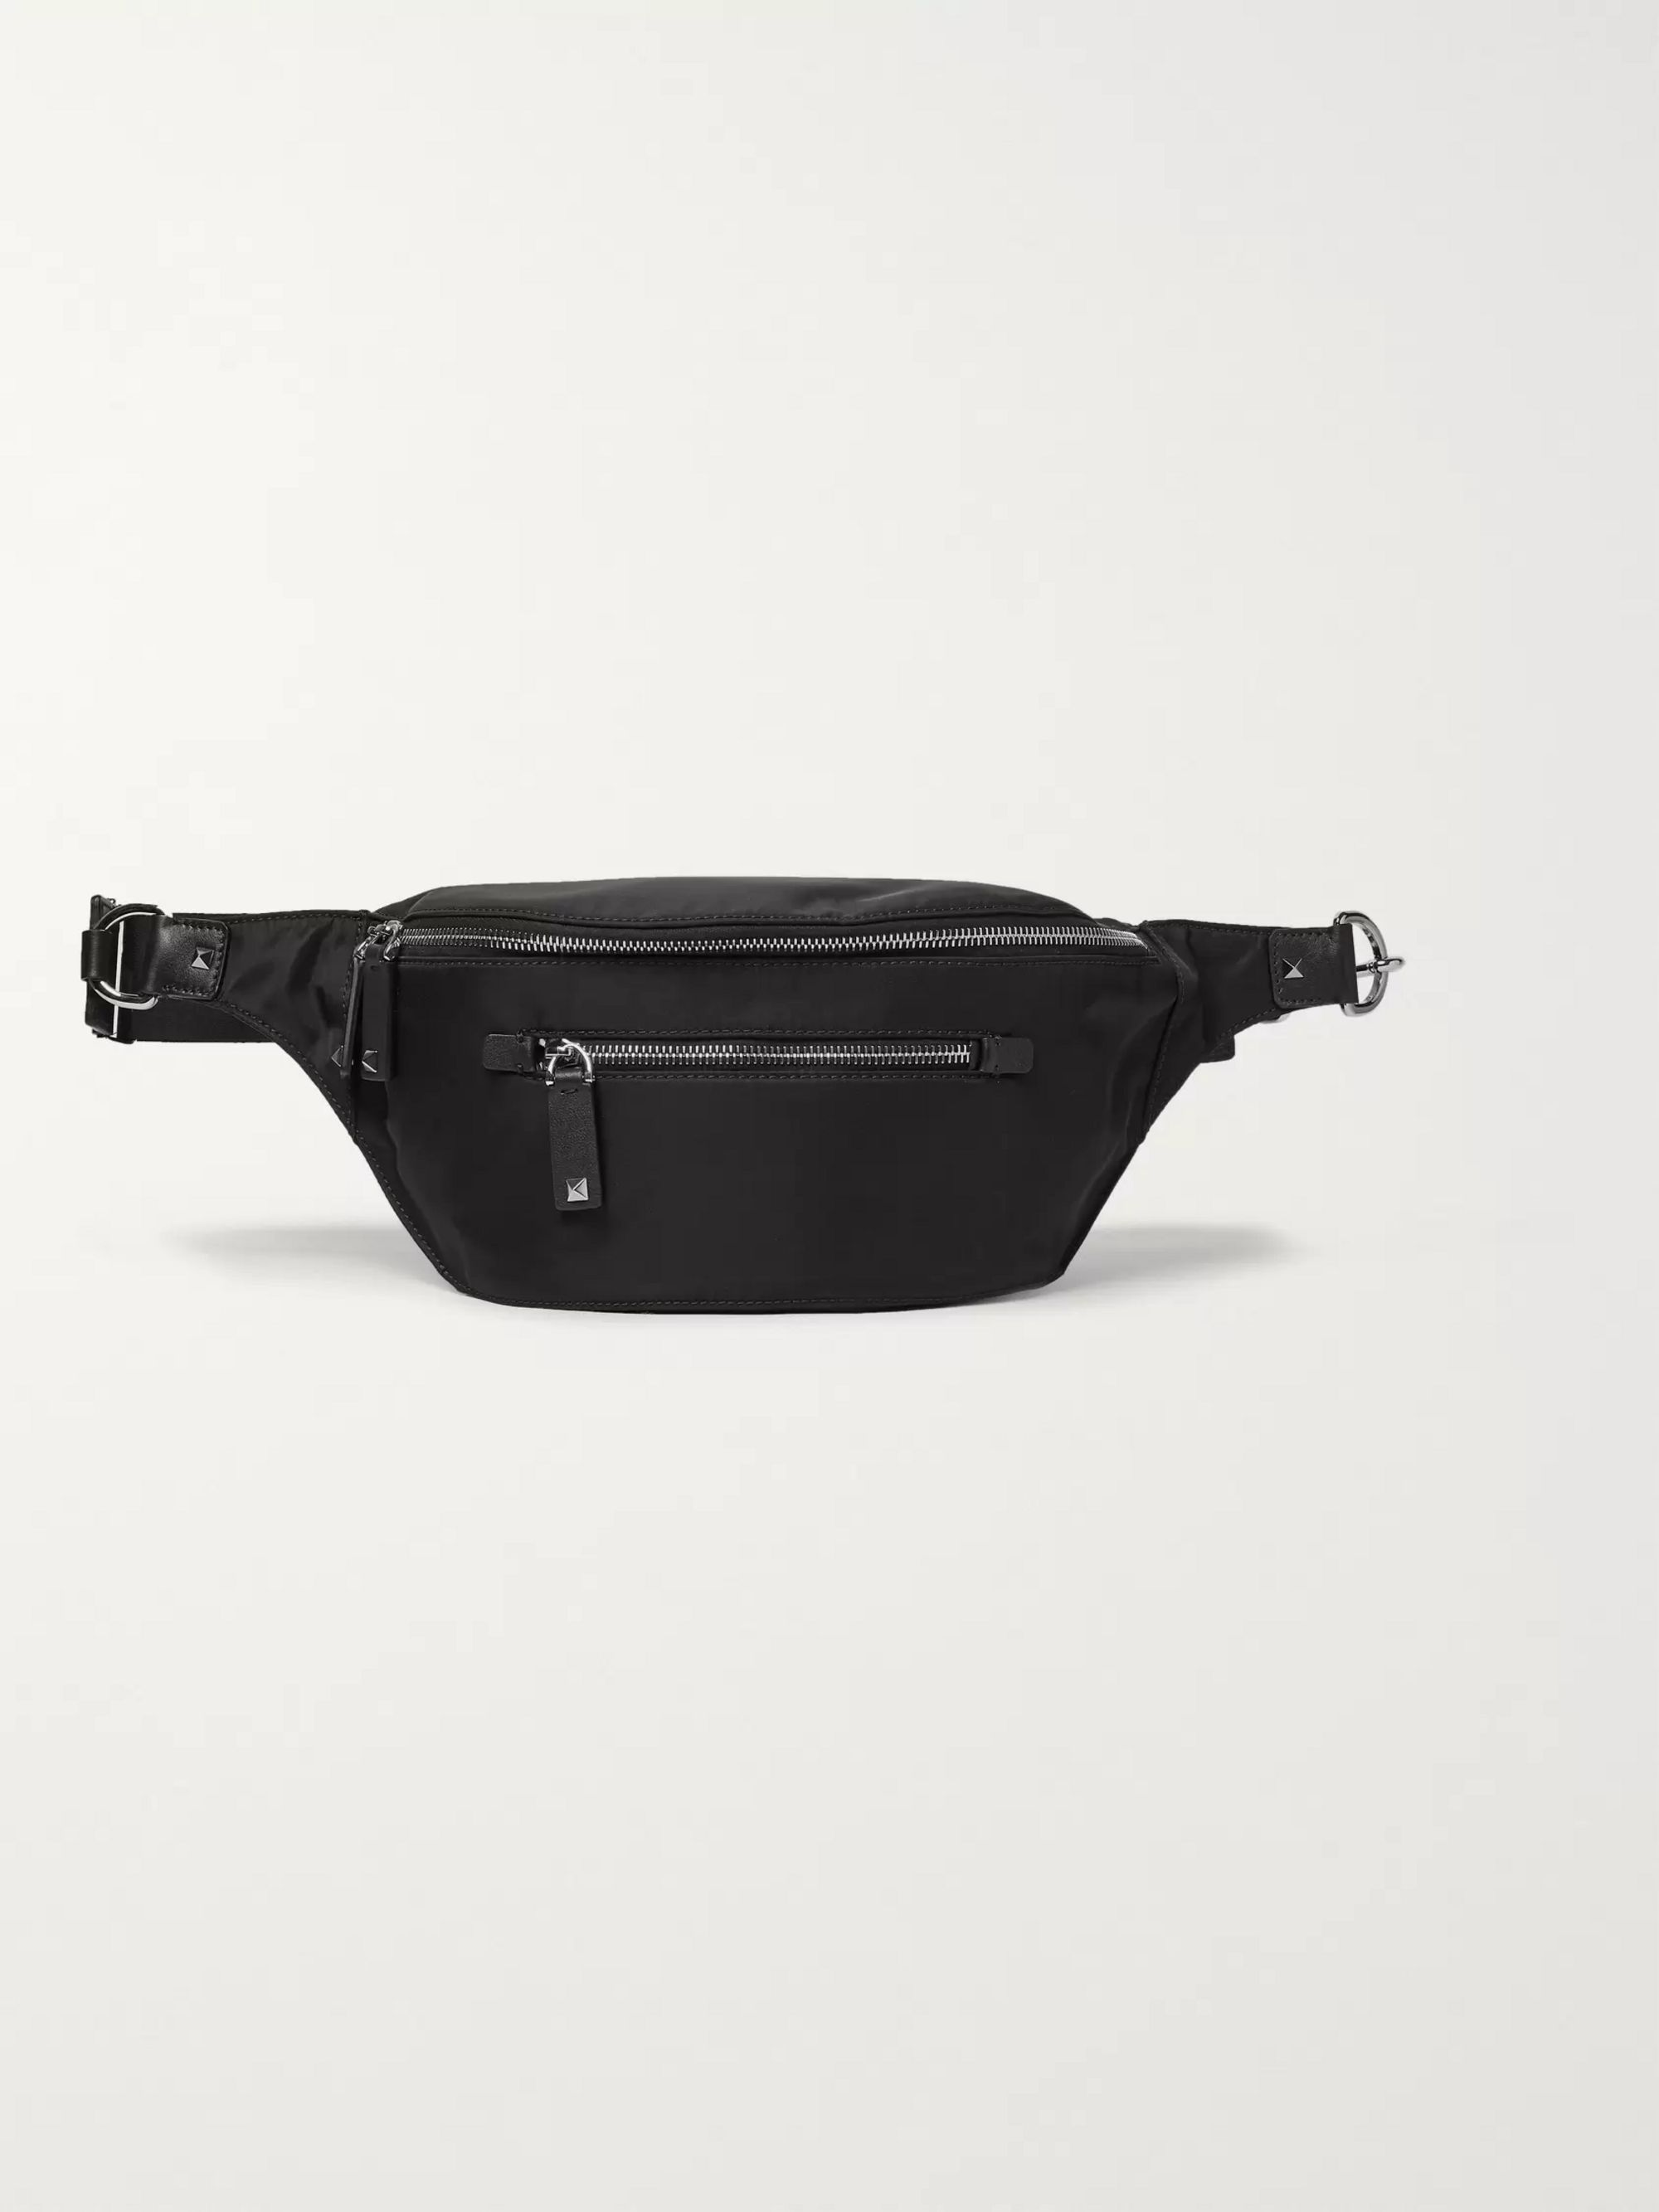 Valentino Valentino Garavani Leather-Trimmed Shell Belt Bag